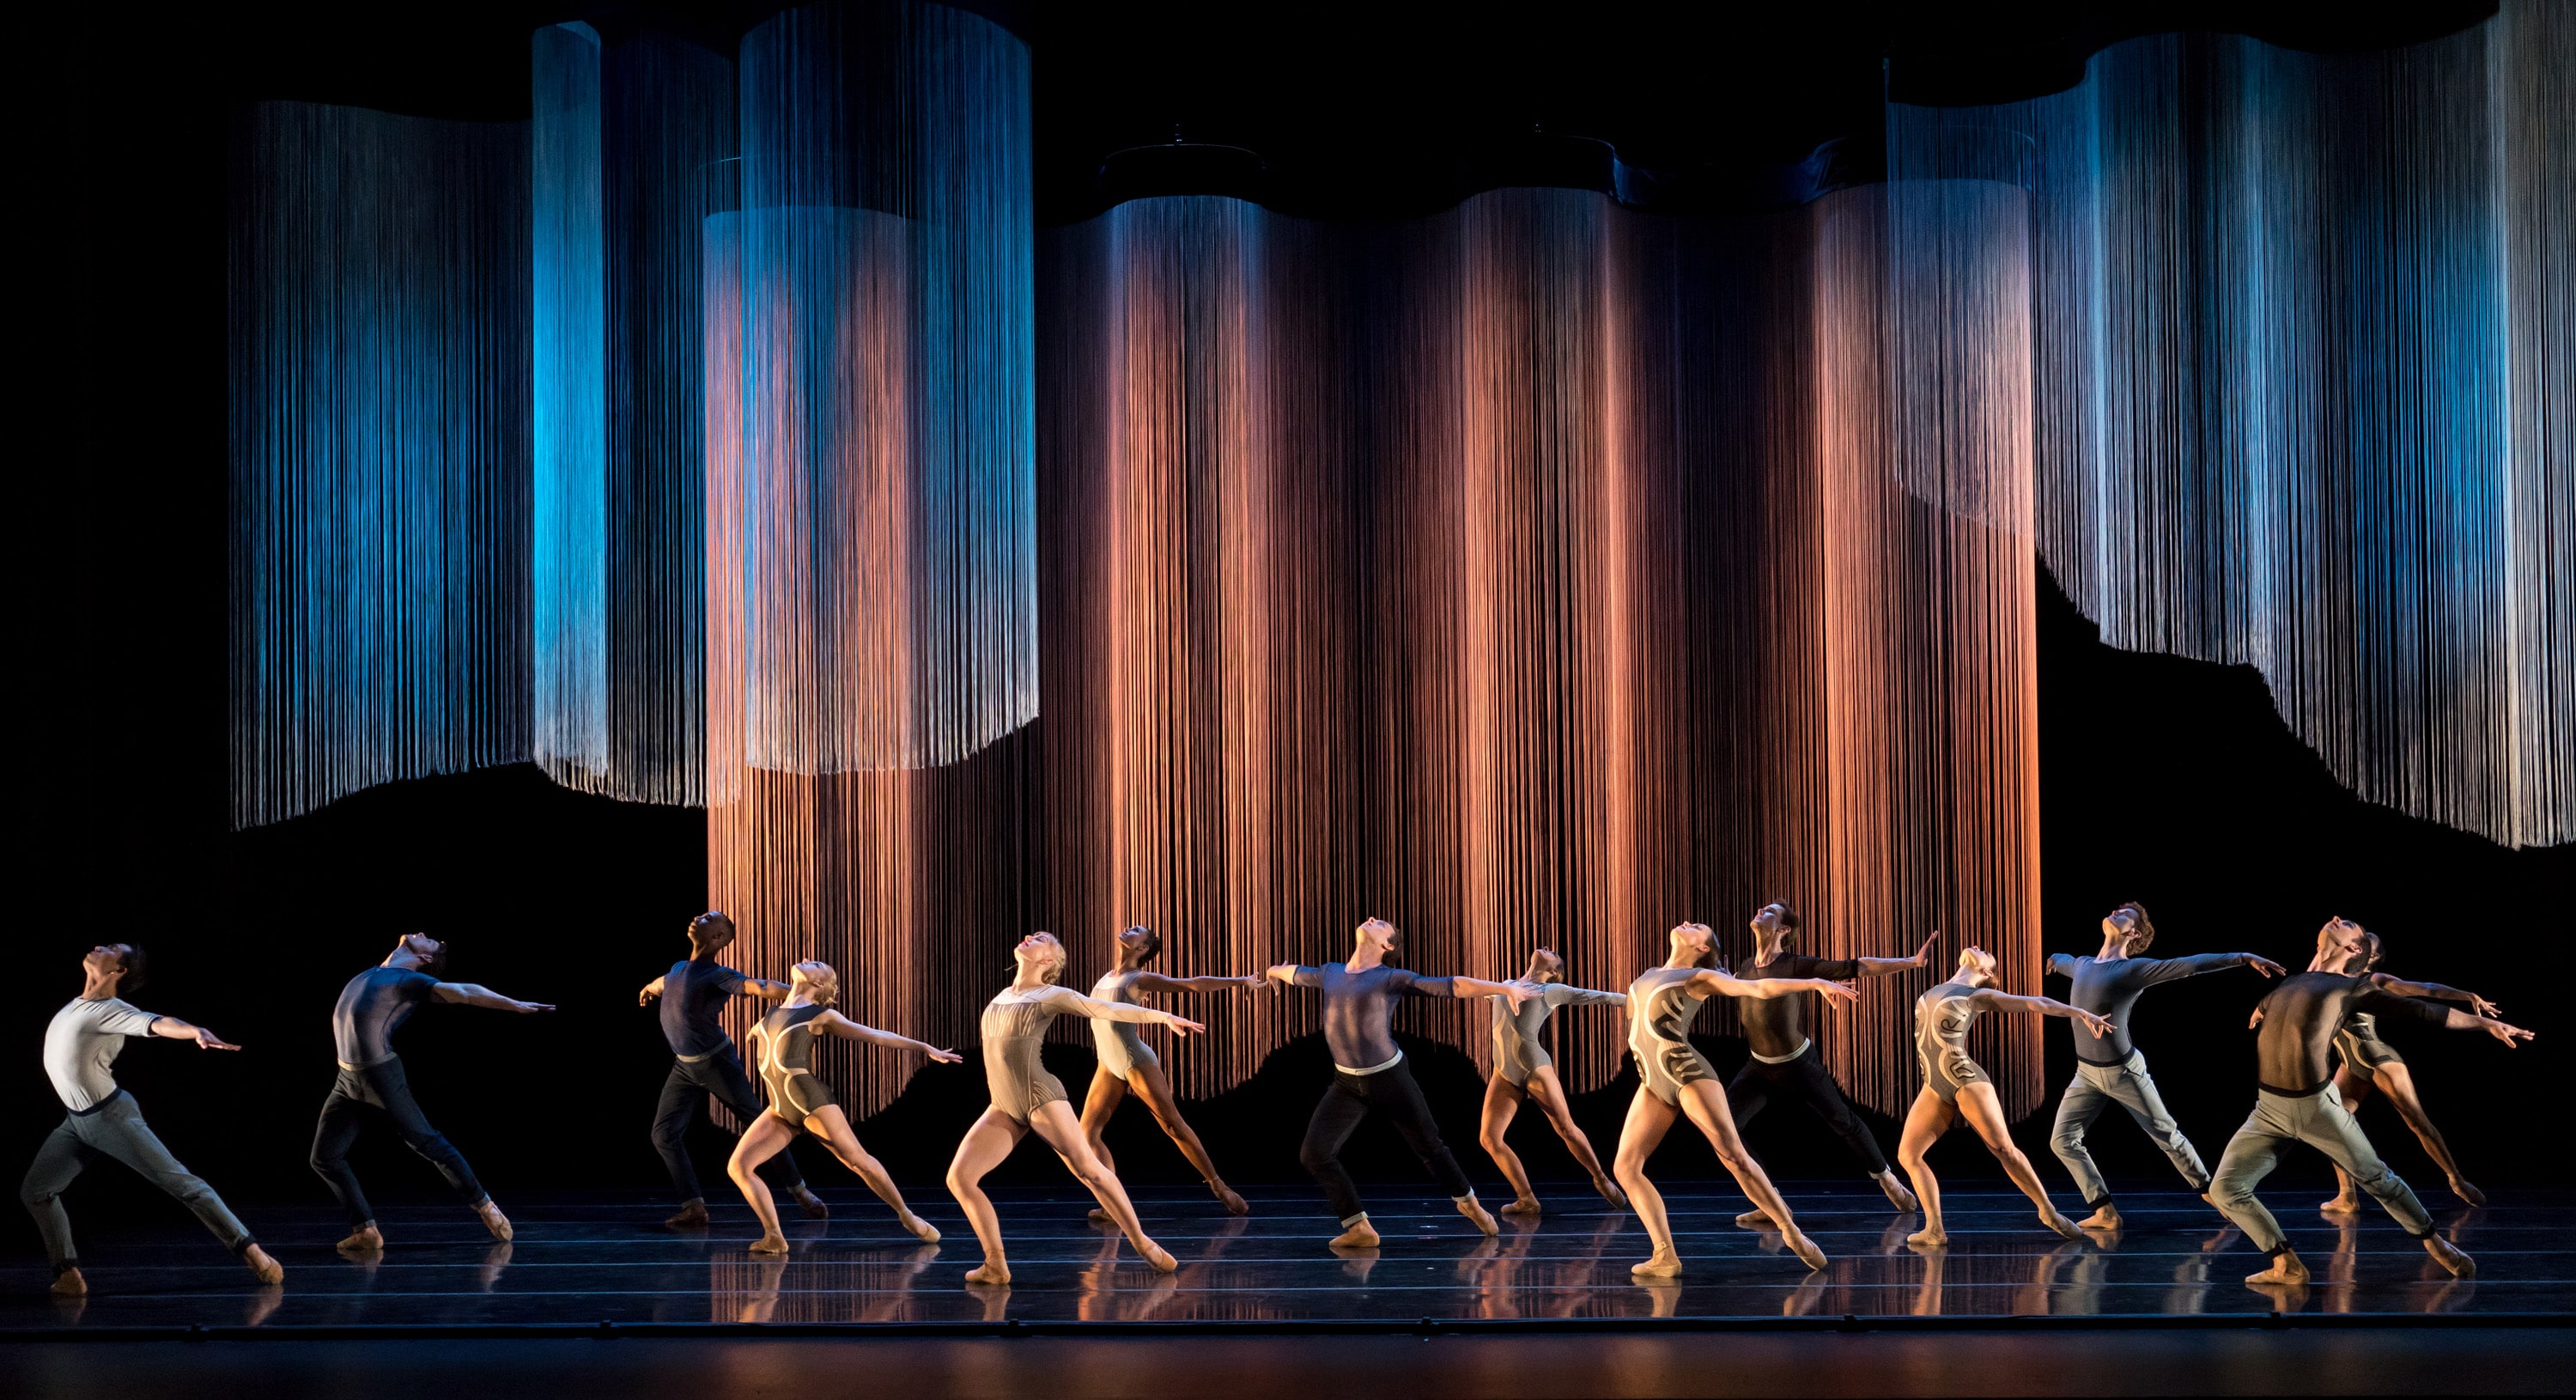 The Smuin Contemporary American Ballet company performs Helen Pickett's Oasis, given its world premiere as part of Smuin's Dance Series Two during its 2015/2016 season. Photo credit: Keith Sutter